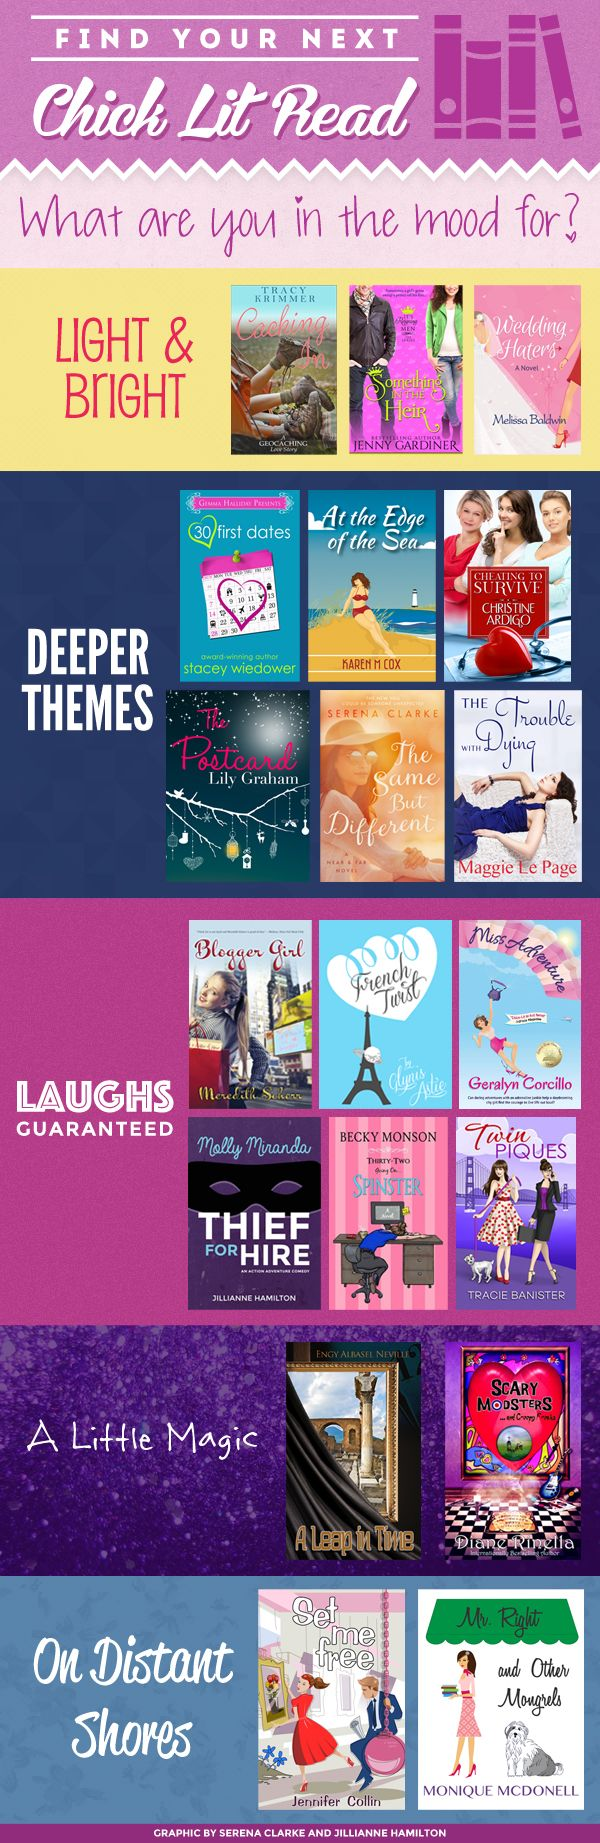 Win Free Books! We're Giving Away 19 Great Chick Lit Ebooks This Week